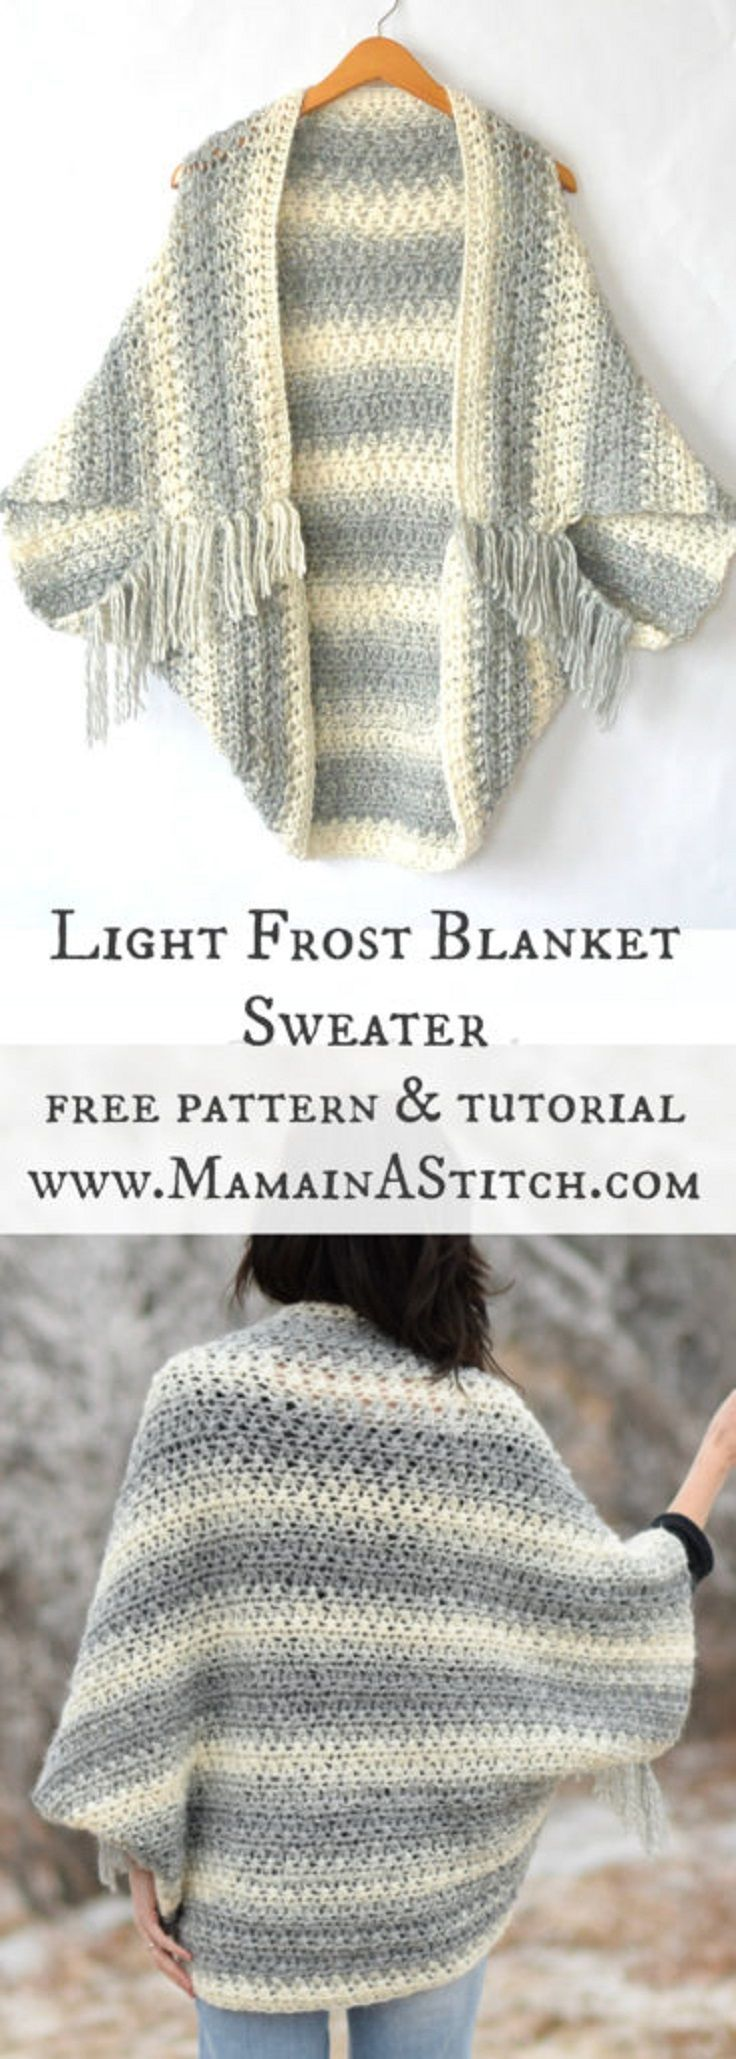 Crochet Light Frost Sweater Pattern